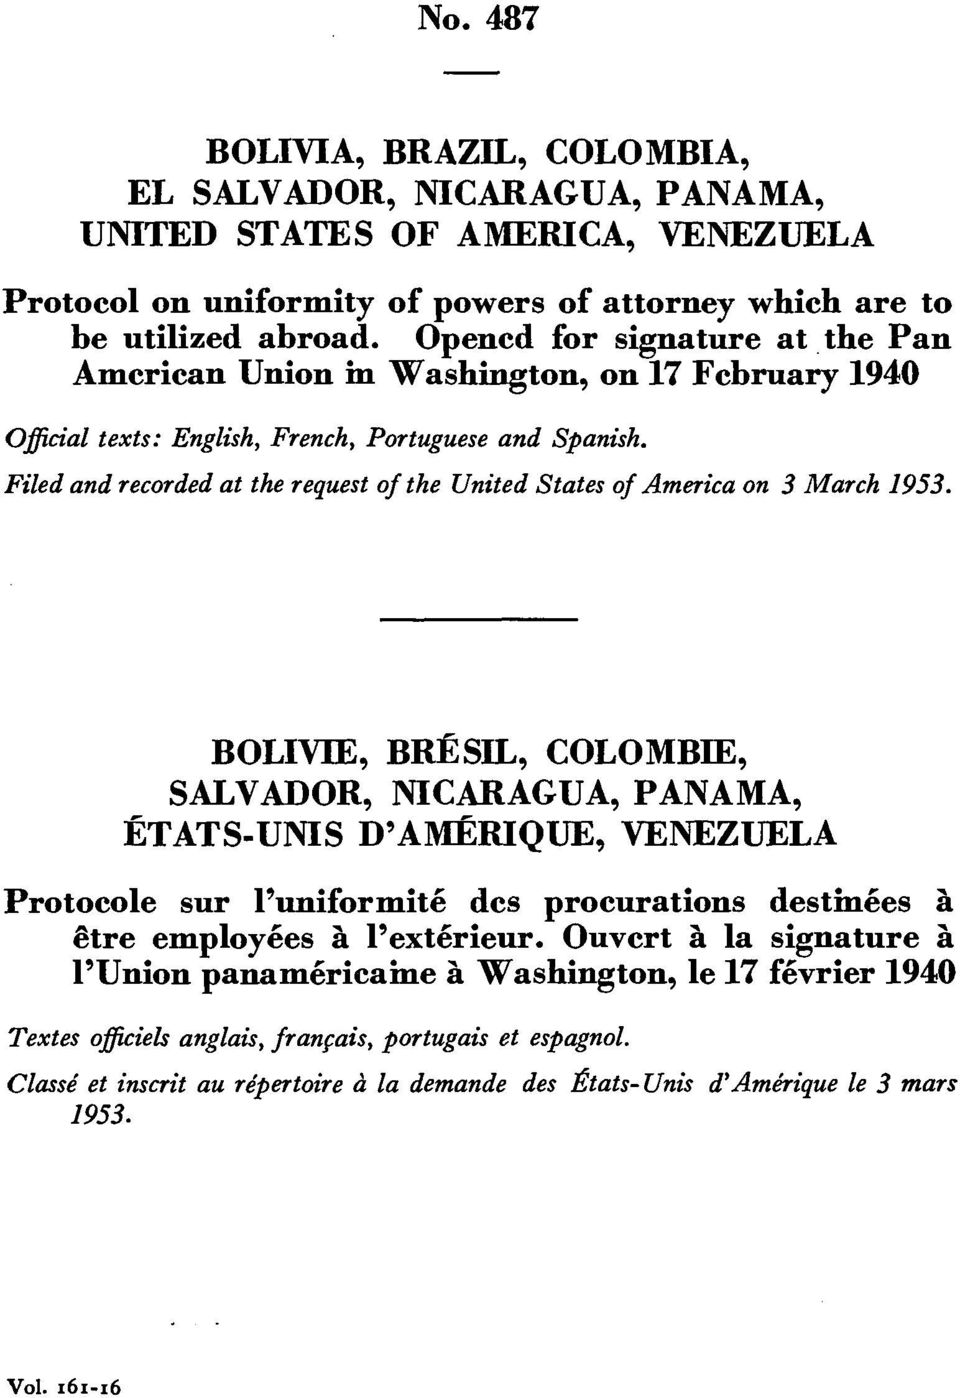 Filedand recordedat the request of the UnitedStates of America on 3 March 1953.